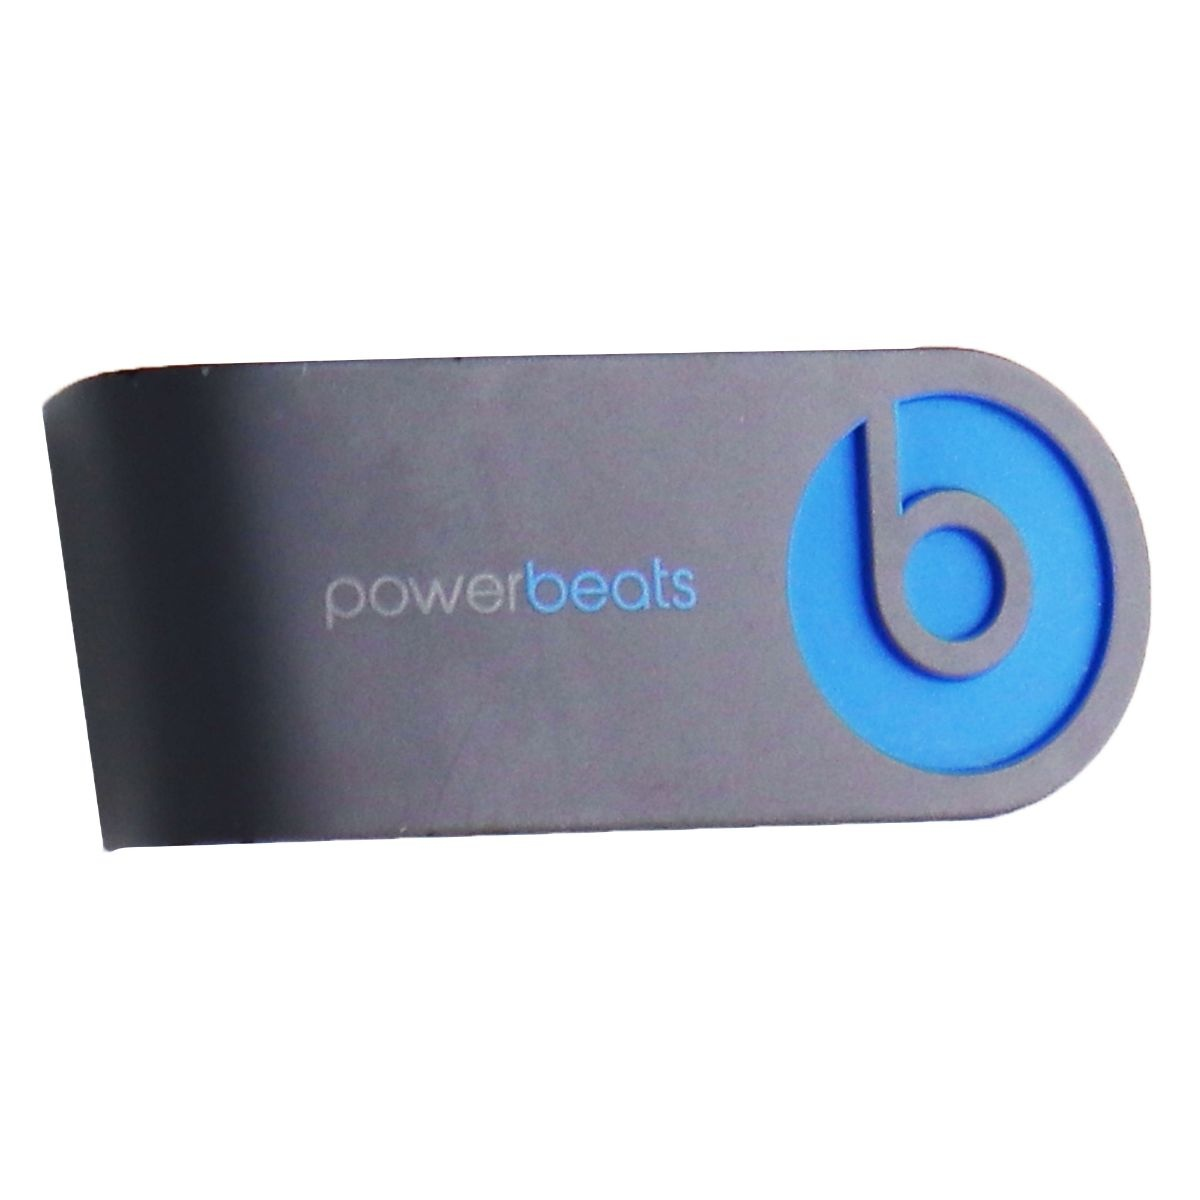 Genuine Power Beats 3 Replacement Right Speaker Housing Panel - Gray/Blue